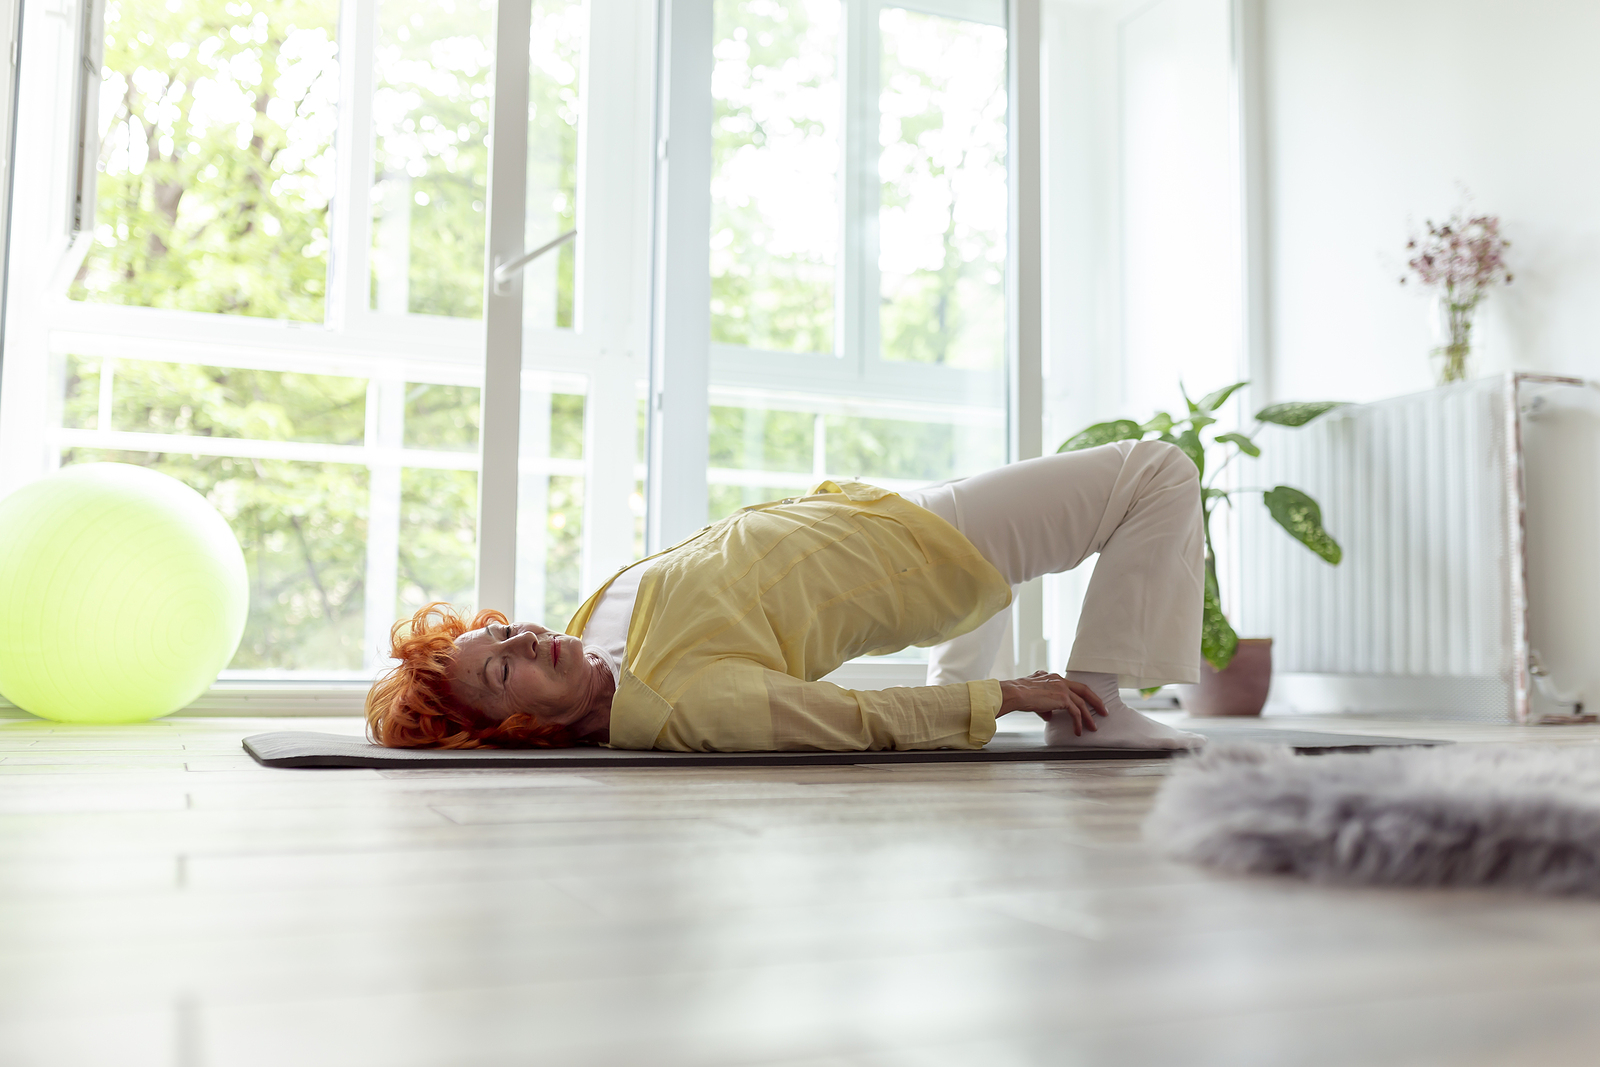 Senior woman completing a bridge pose, a lower back pain exercise.